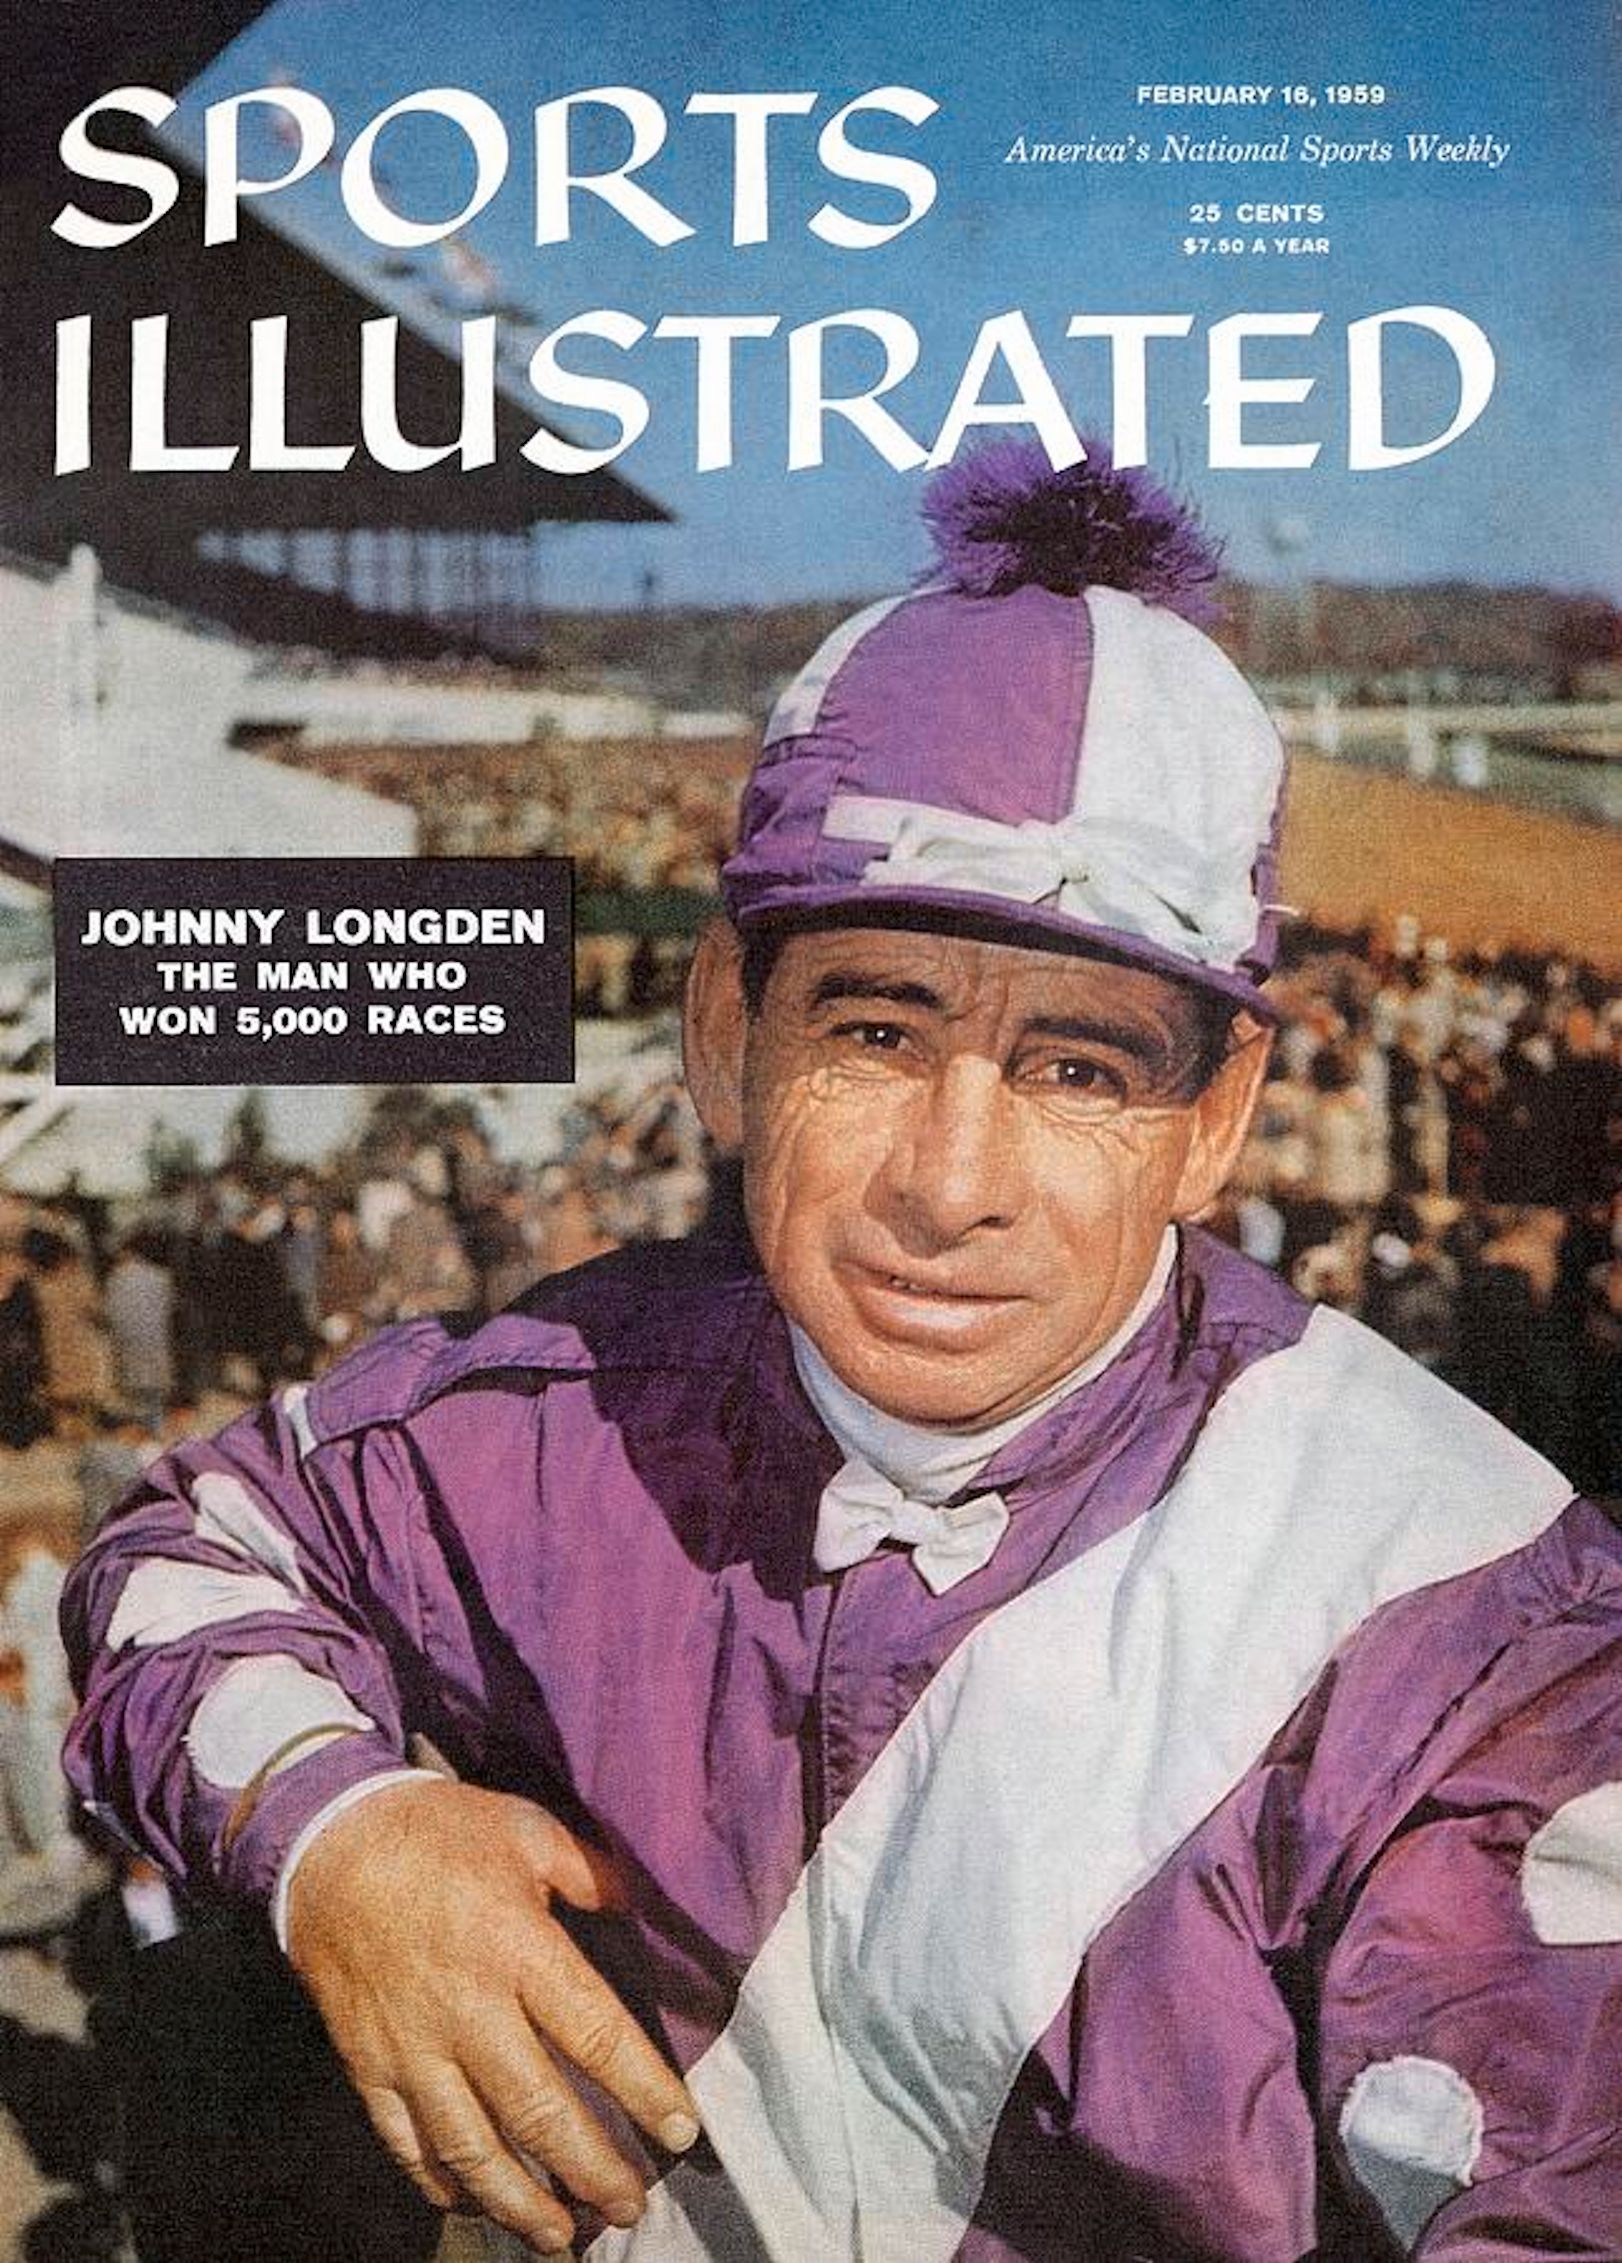 """Johnny Longden on the cover of """"Sports Illustrated"""" in 1959 (Sports Illustrated)"""